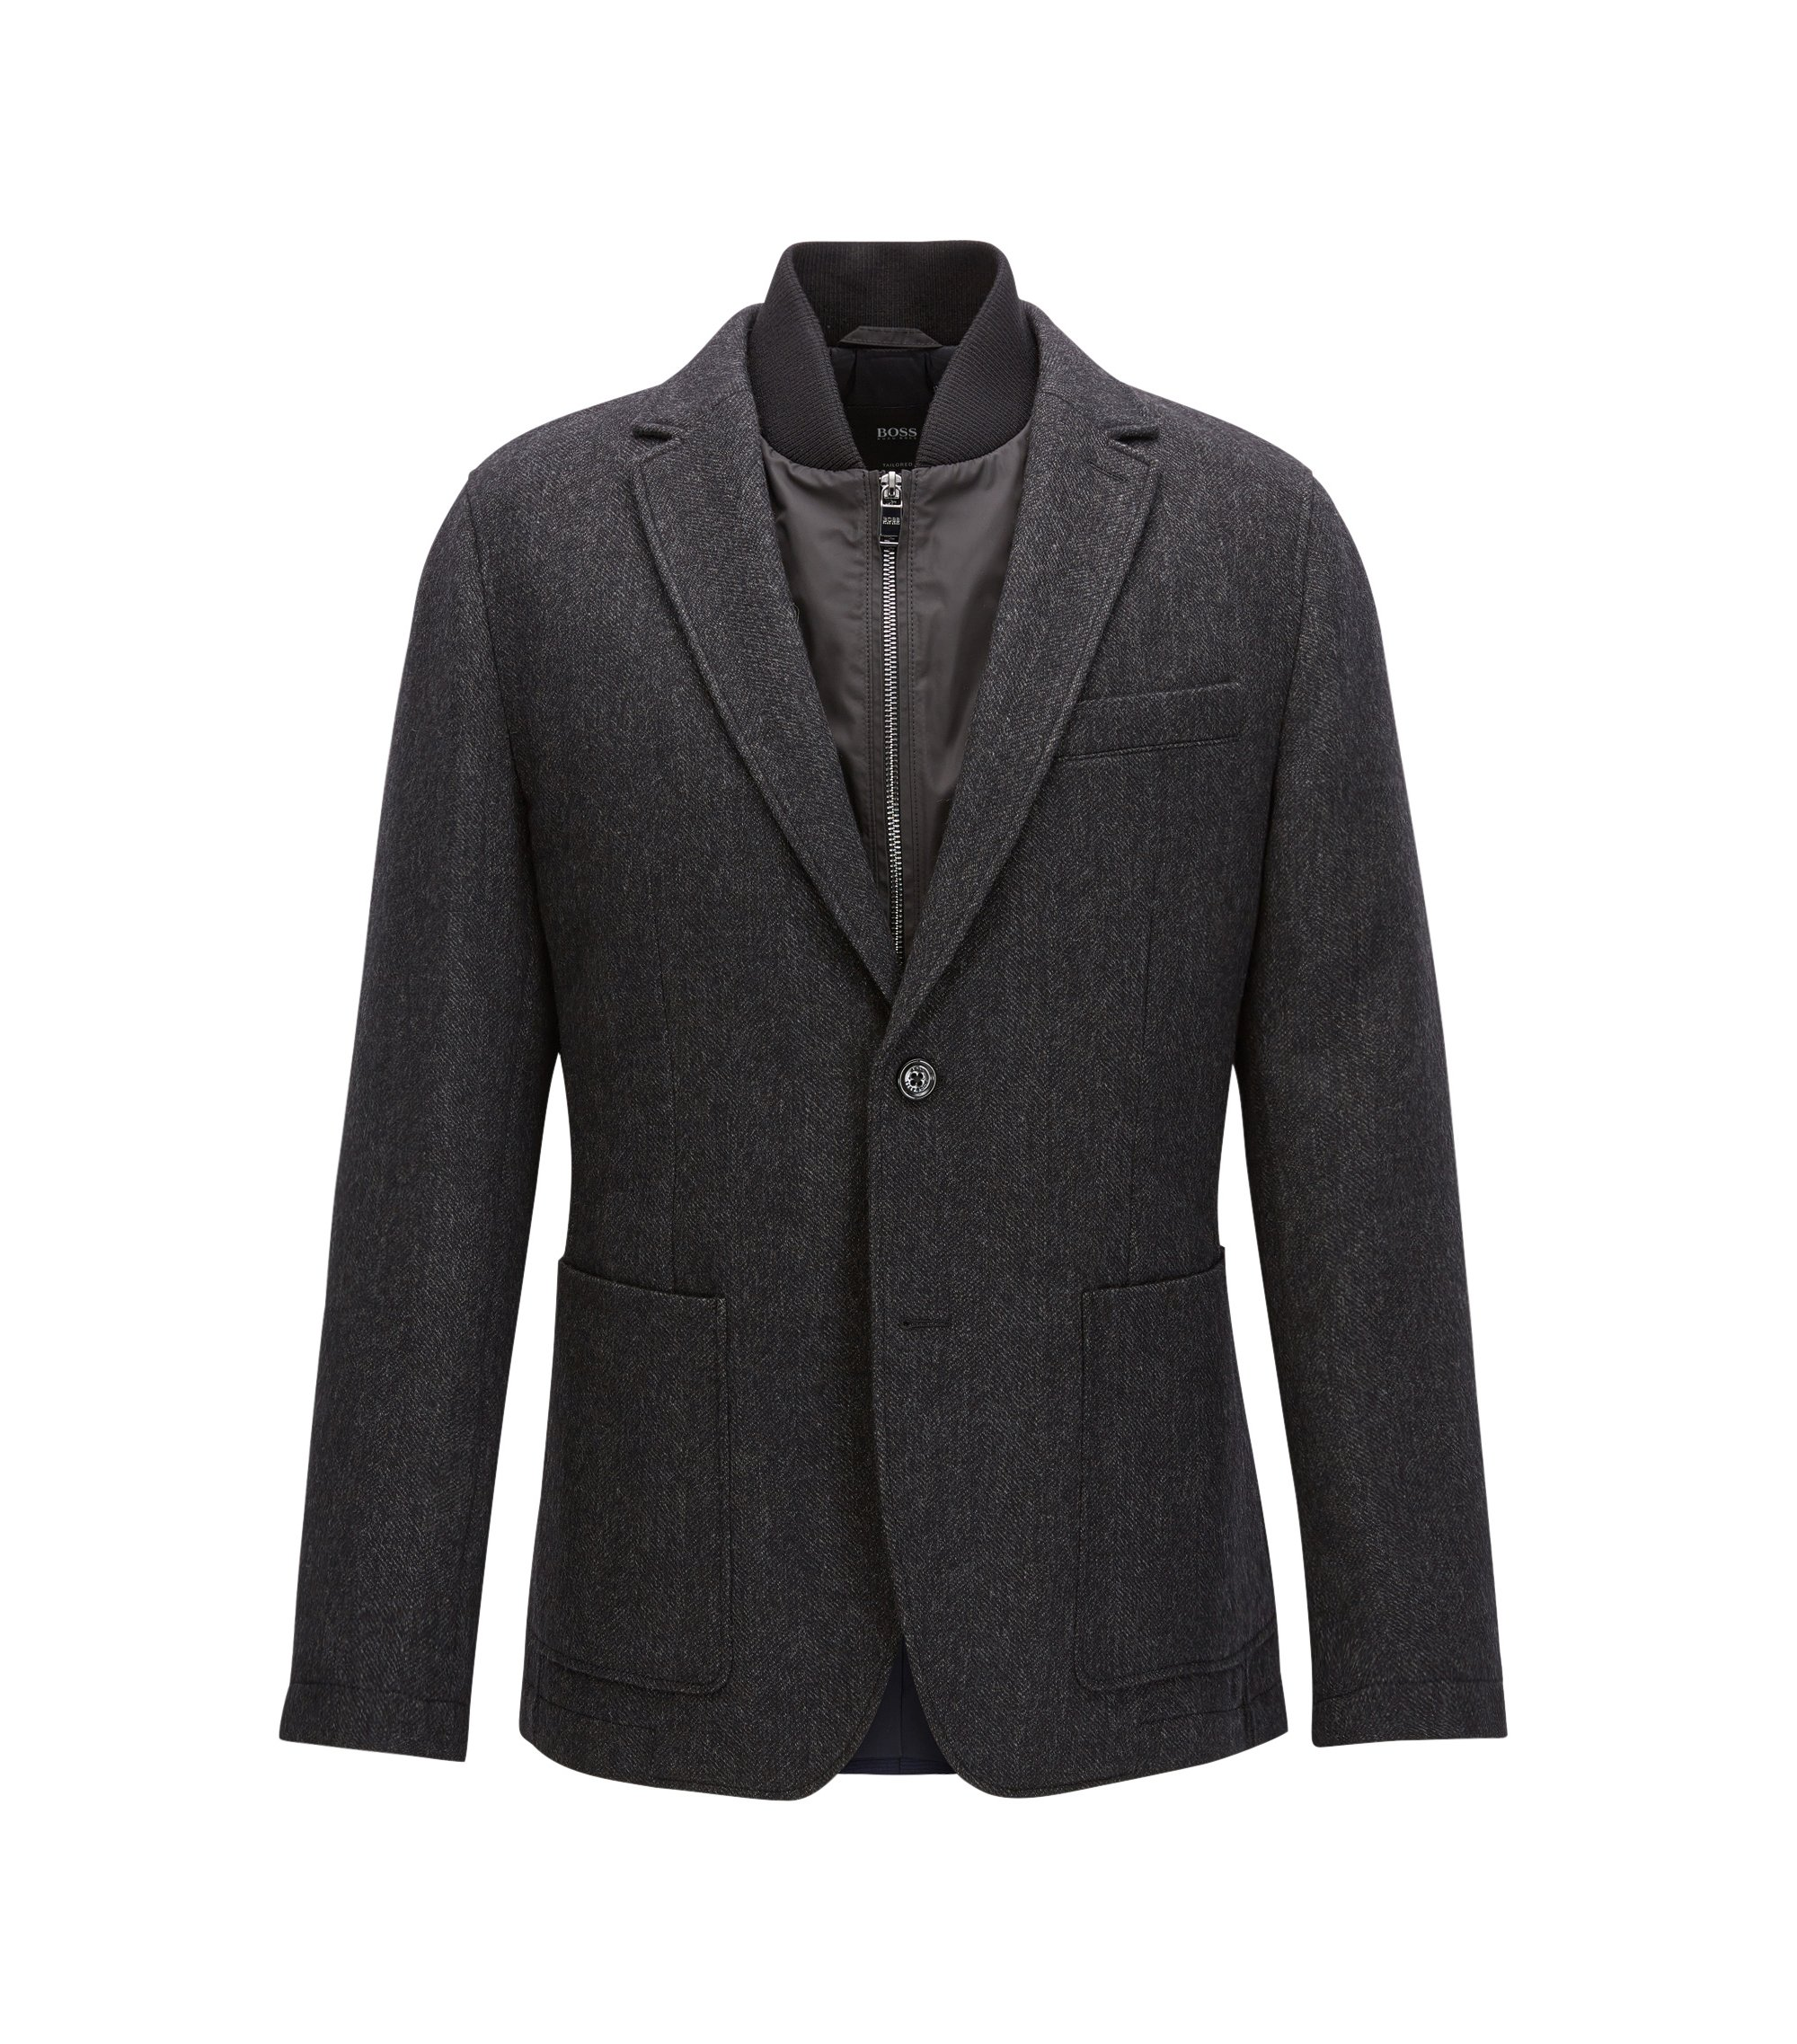 Blazer regular fit in lana con gilet rimovibile, Grigio scuro